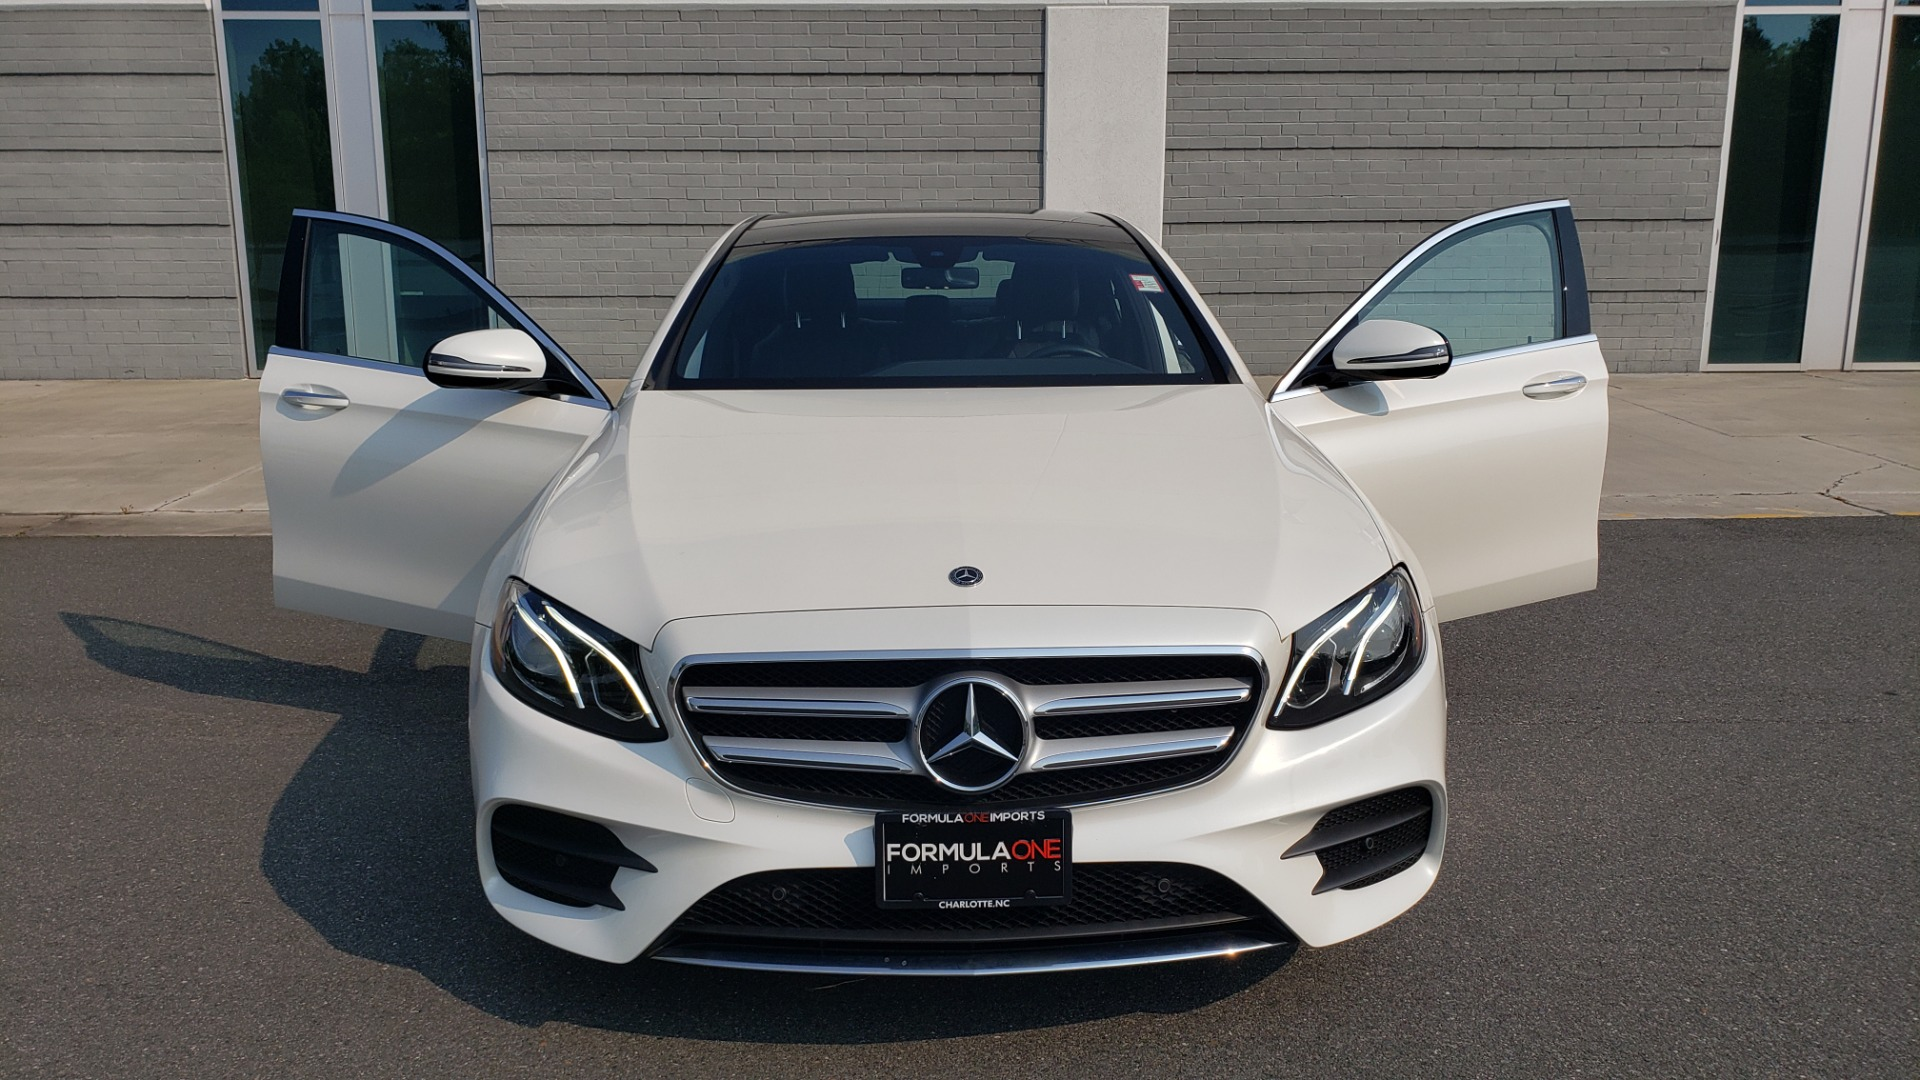 Used 2018 Mercedes-Benz E-CLASS E 300 4MATIC / PREMIUM / NAV / PANO-ROOF / BURMESTER / REARVIEW for sale $41,995 at Formula Imports in Charlotte NC 28227 19